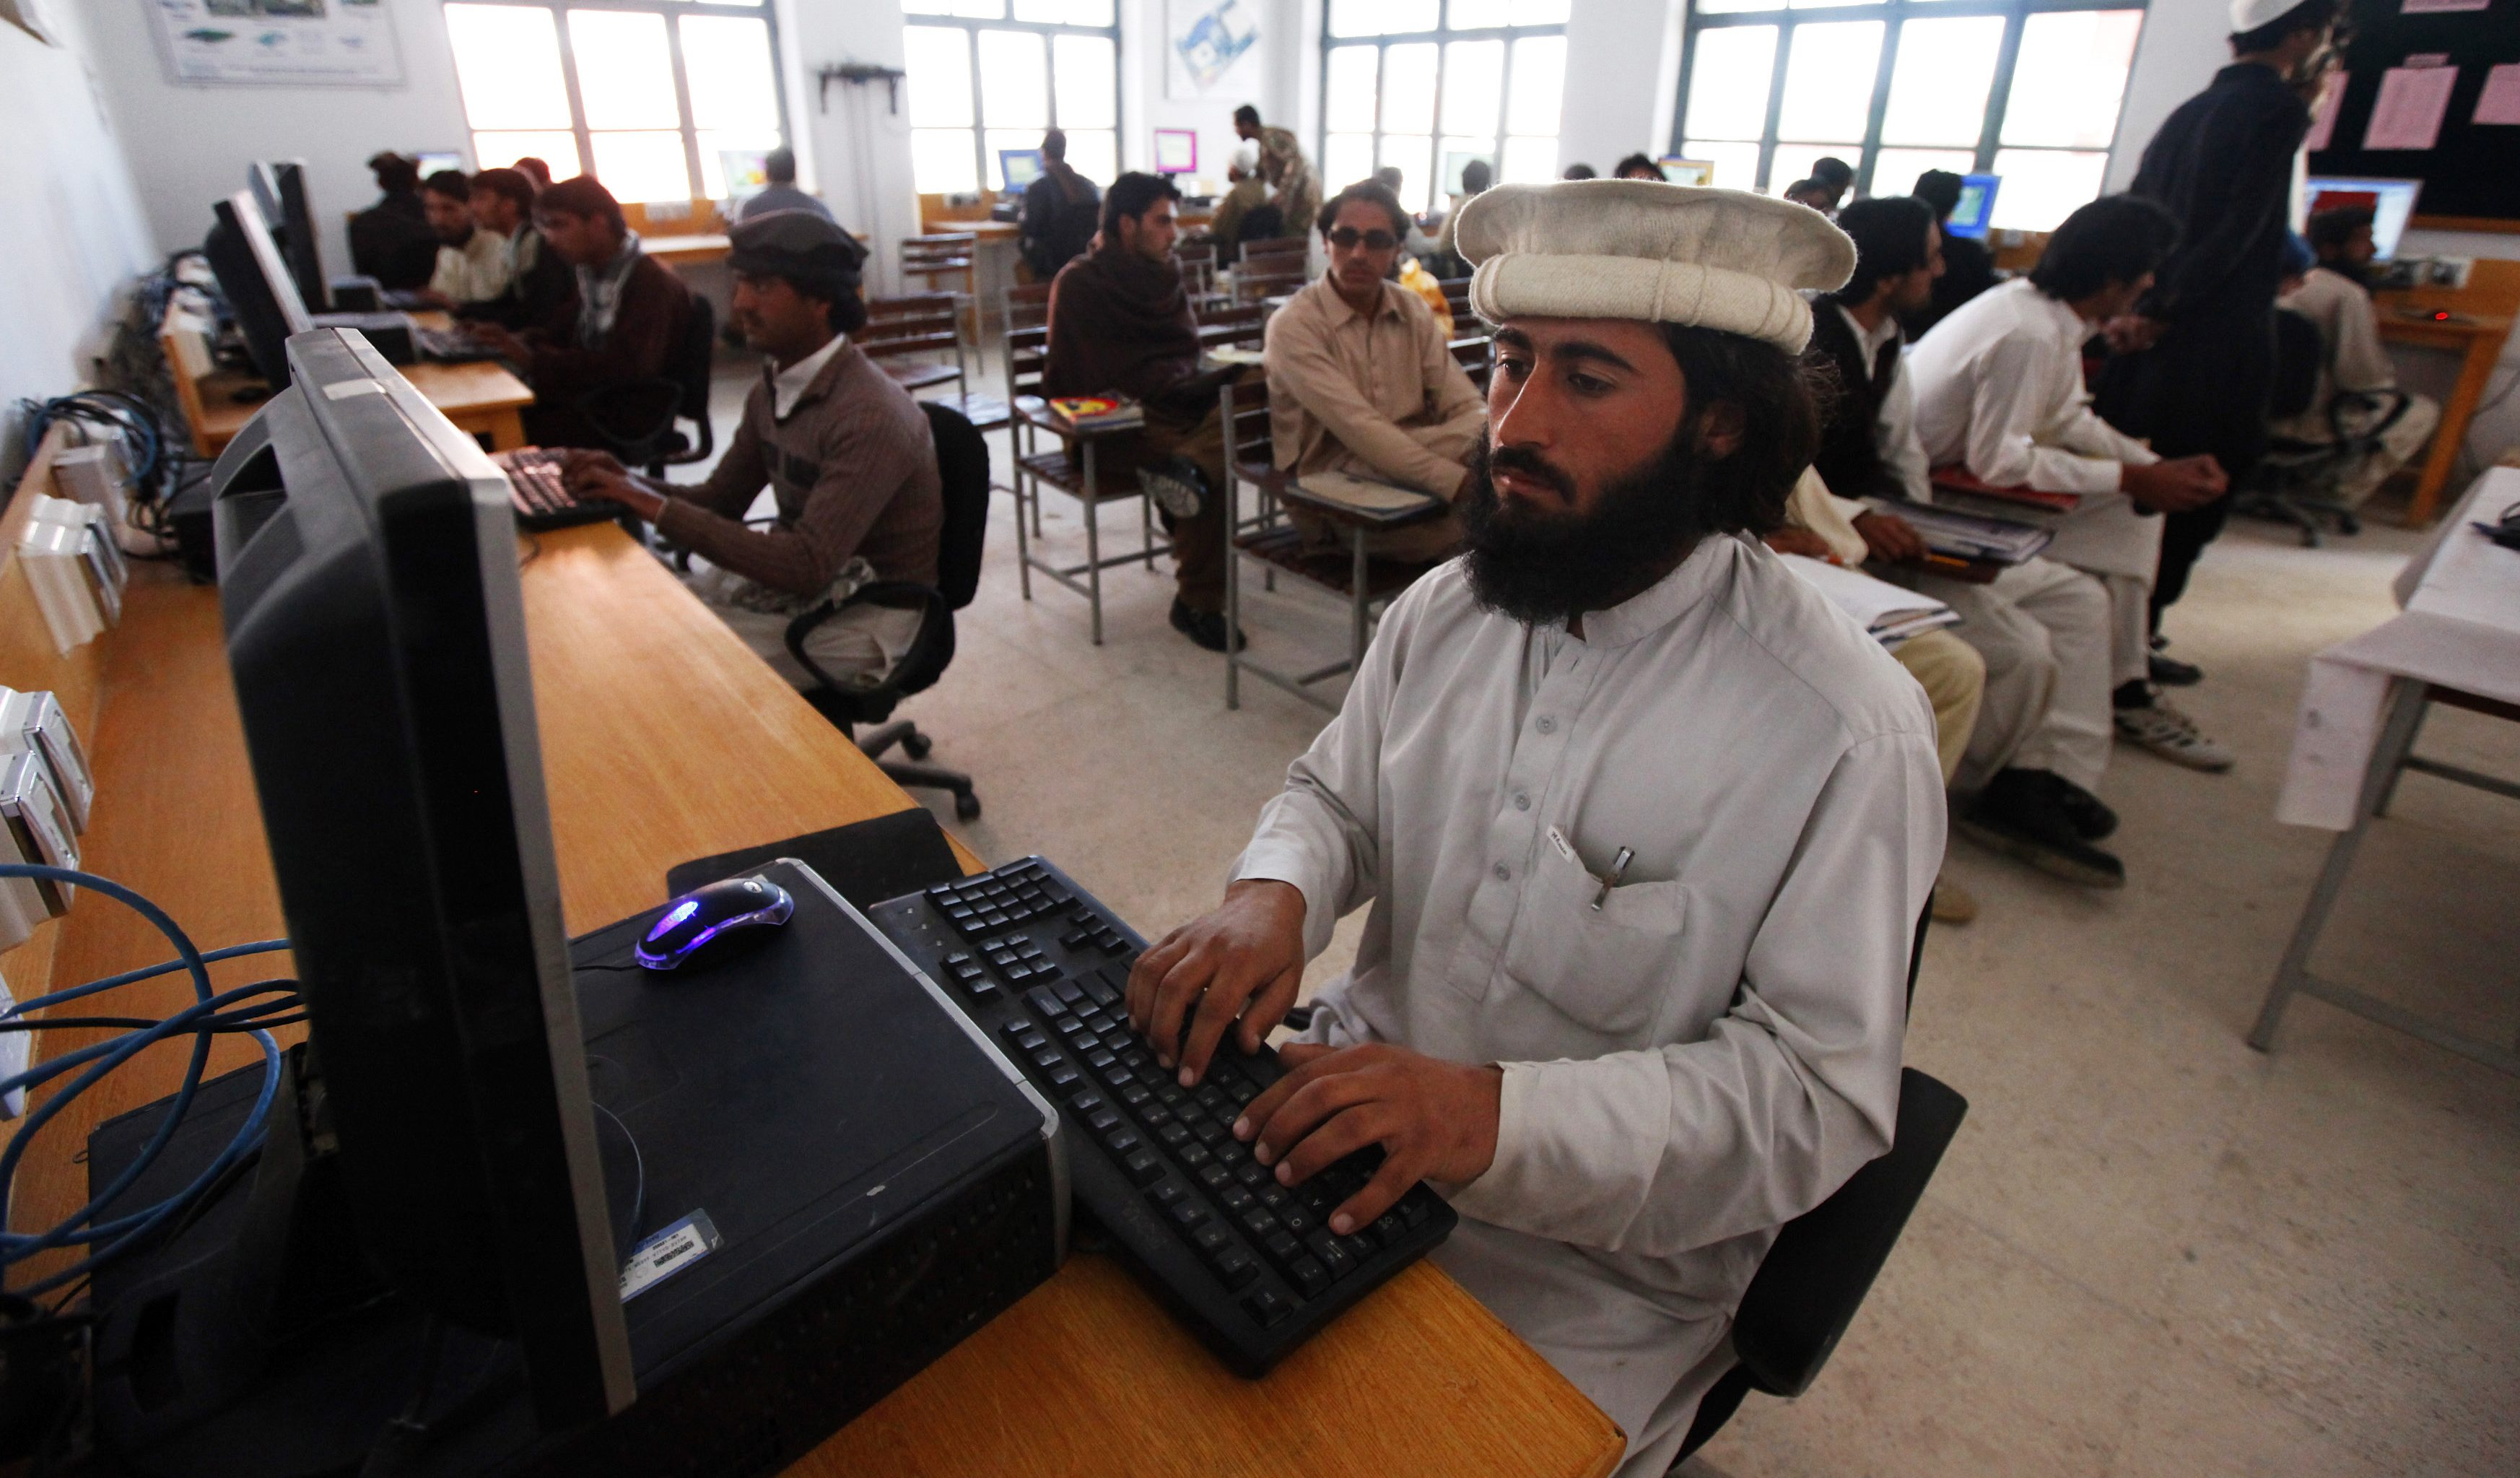 """A man attends a computer class at the Wana Institute of Technical Training in Wana, the main town in Pakistan's South Waziristan tribal region bordering Afghanistan November 27, 2012. In a Pakistan army base high in the mountains on the Afghan frontier, a general explains a strategy for fighting the Taliban he calls simply """"WHAM"""" - winning hearts and minds. According to the army narrative, the campaign includes winning over the region's ethnic Pashtun tribes through dialogue, creating commercial opportunities and providing education in new schools and colleges. To match Feature PAKISTAN-MILITARY/  Picture taken on November 27, 2012. REUTERS/Faisal Mahmood  (PAKISTAN - Tags: POLITICS CIVIL UNREST EDUCATION SCIENCE TECHNOLOGY MILITARY) - GM1E9231CL001"""